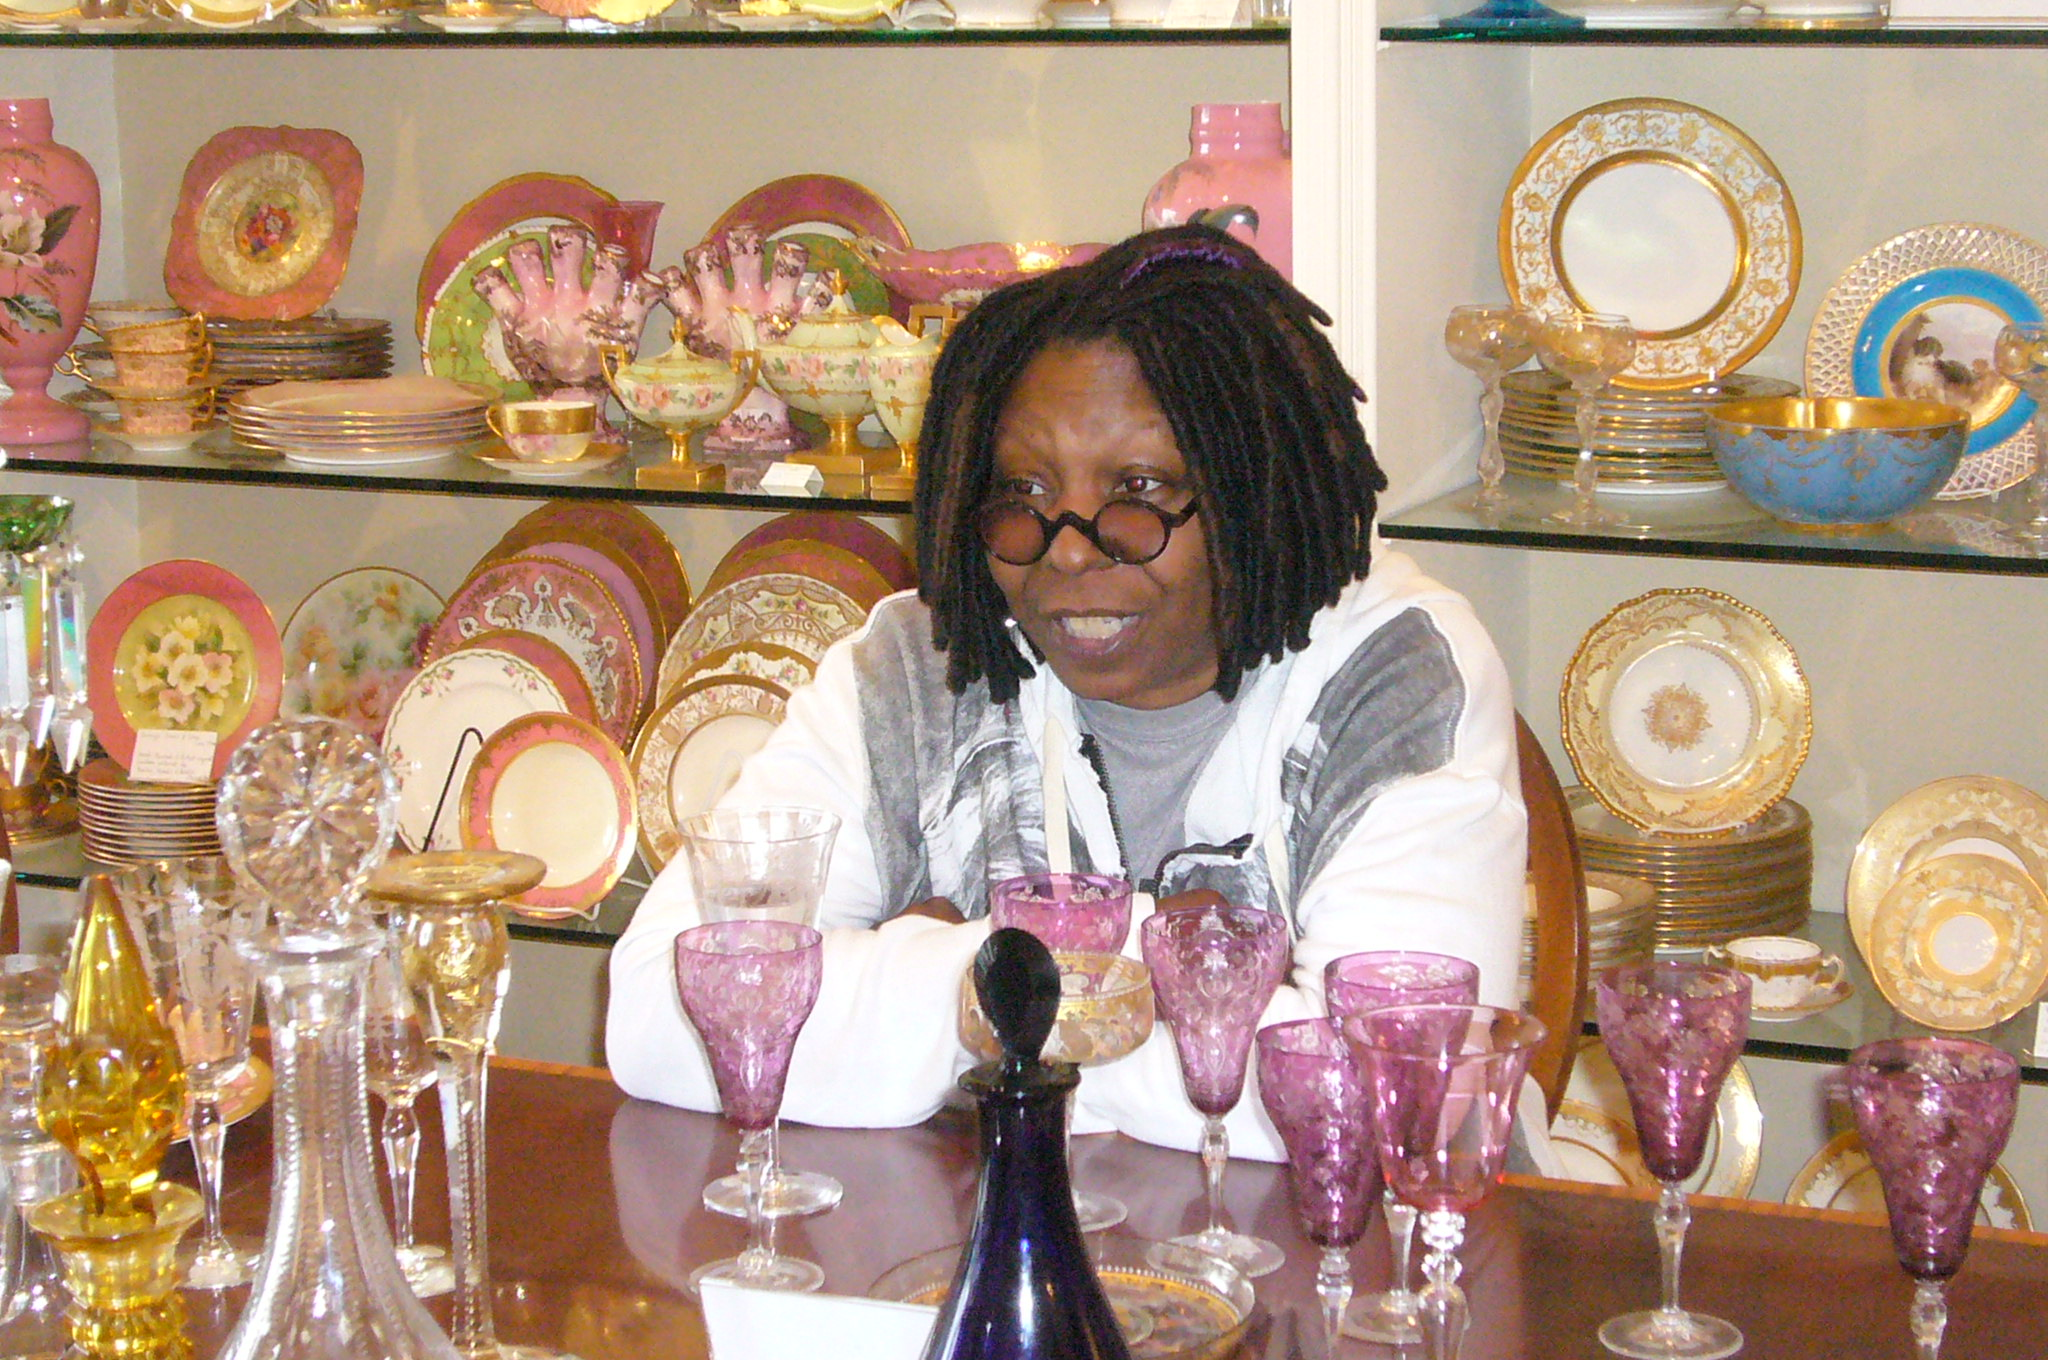 Whoopi Goldberg shopping for antiques on West Palm Beach Florida's Antique Row Art & Design District.